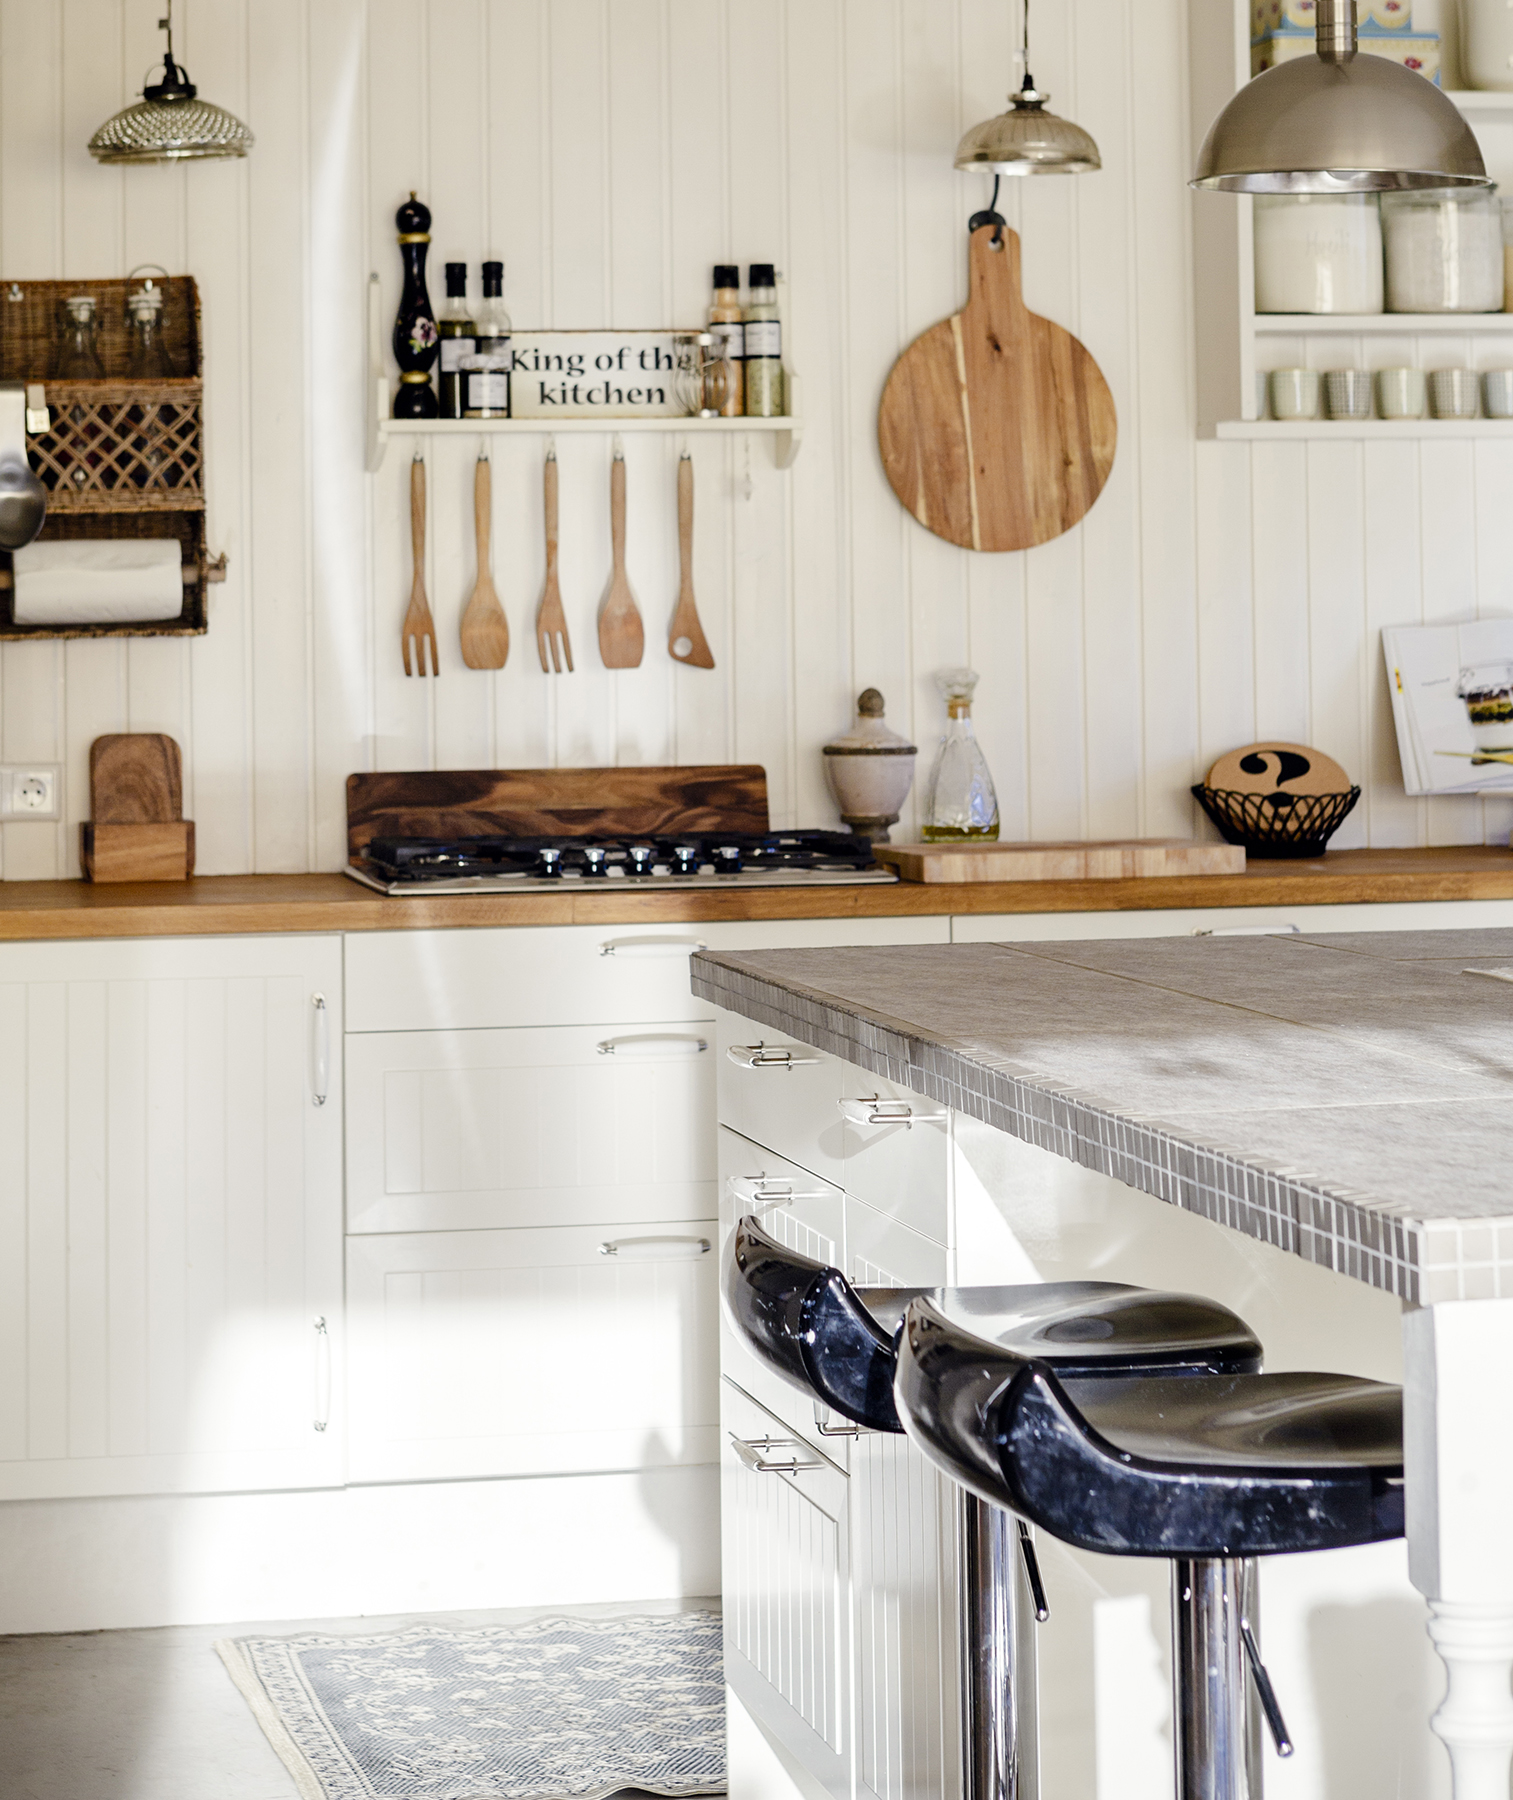 Clean kitchen with wood details